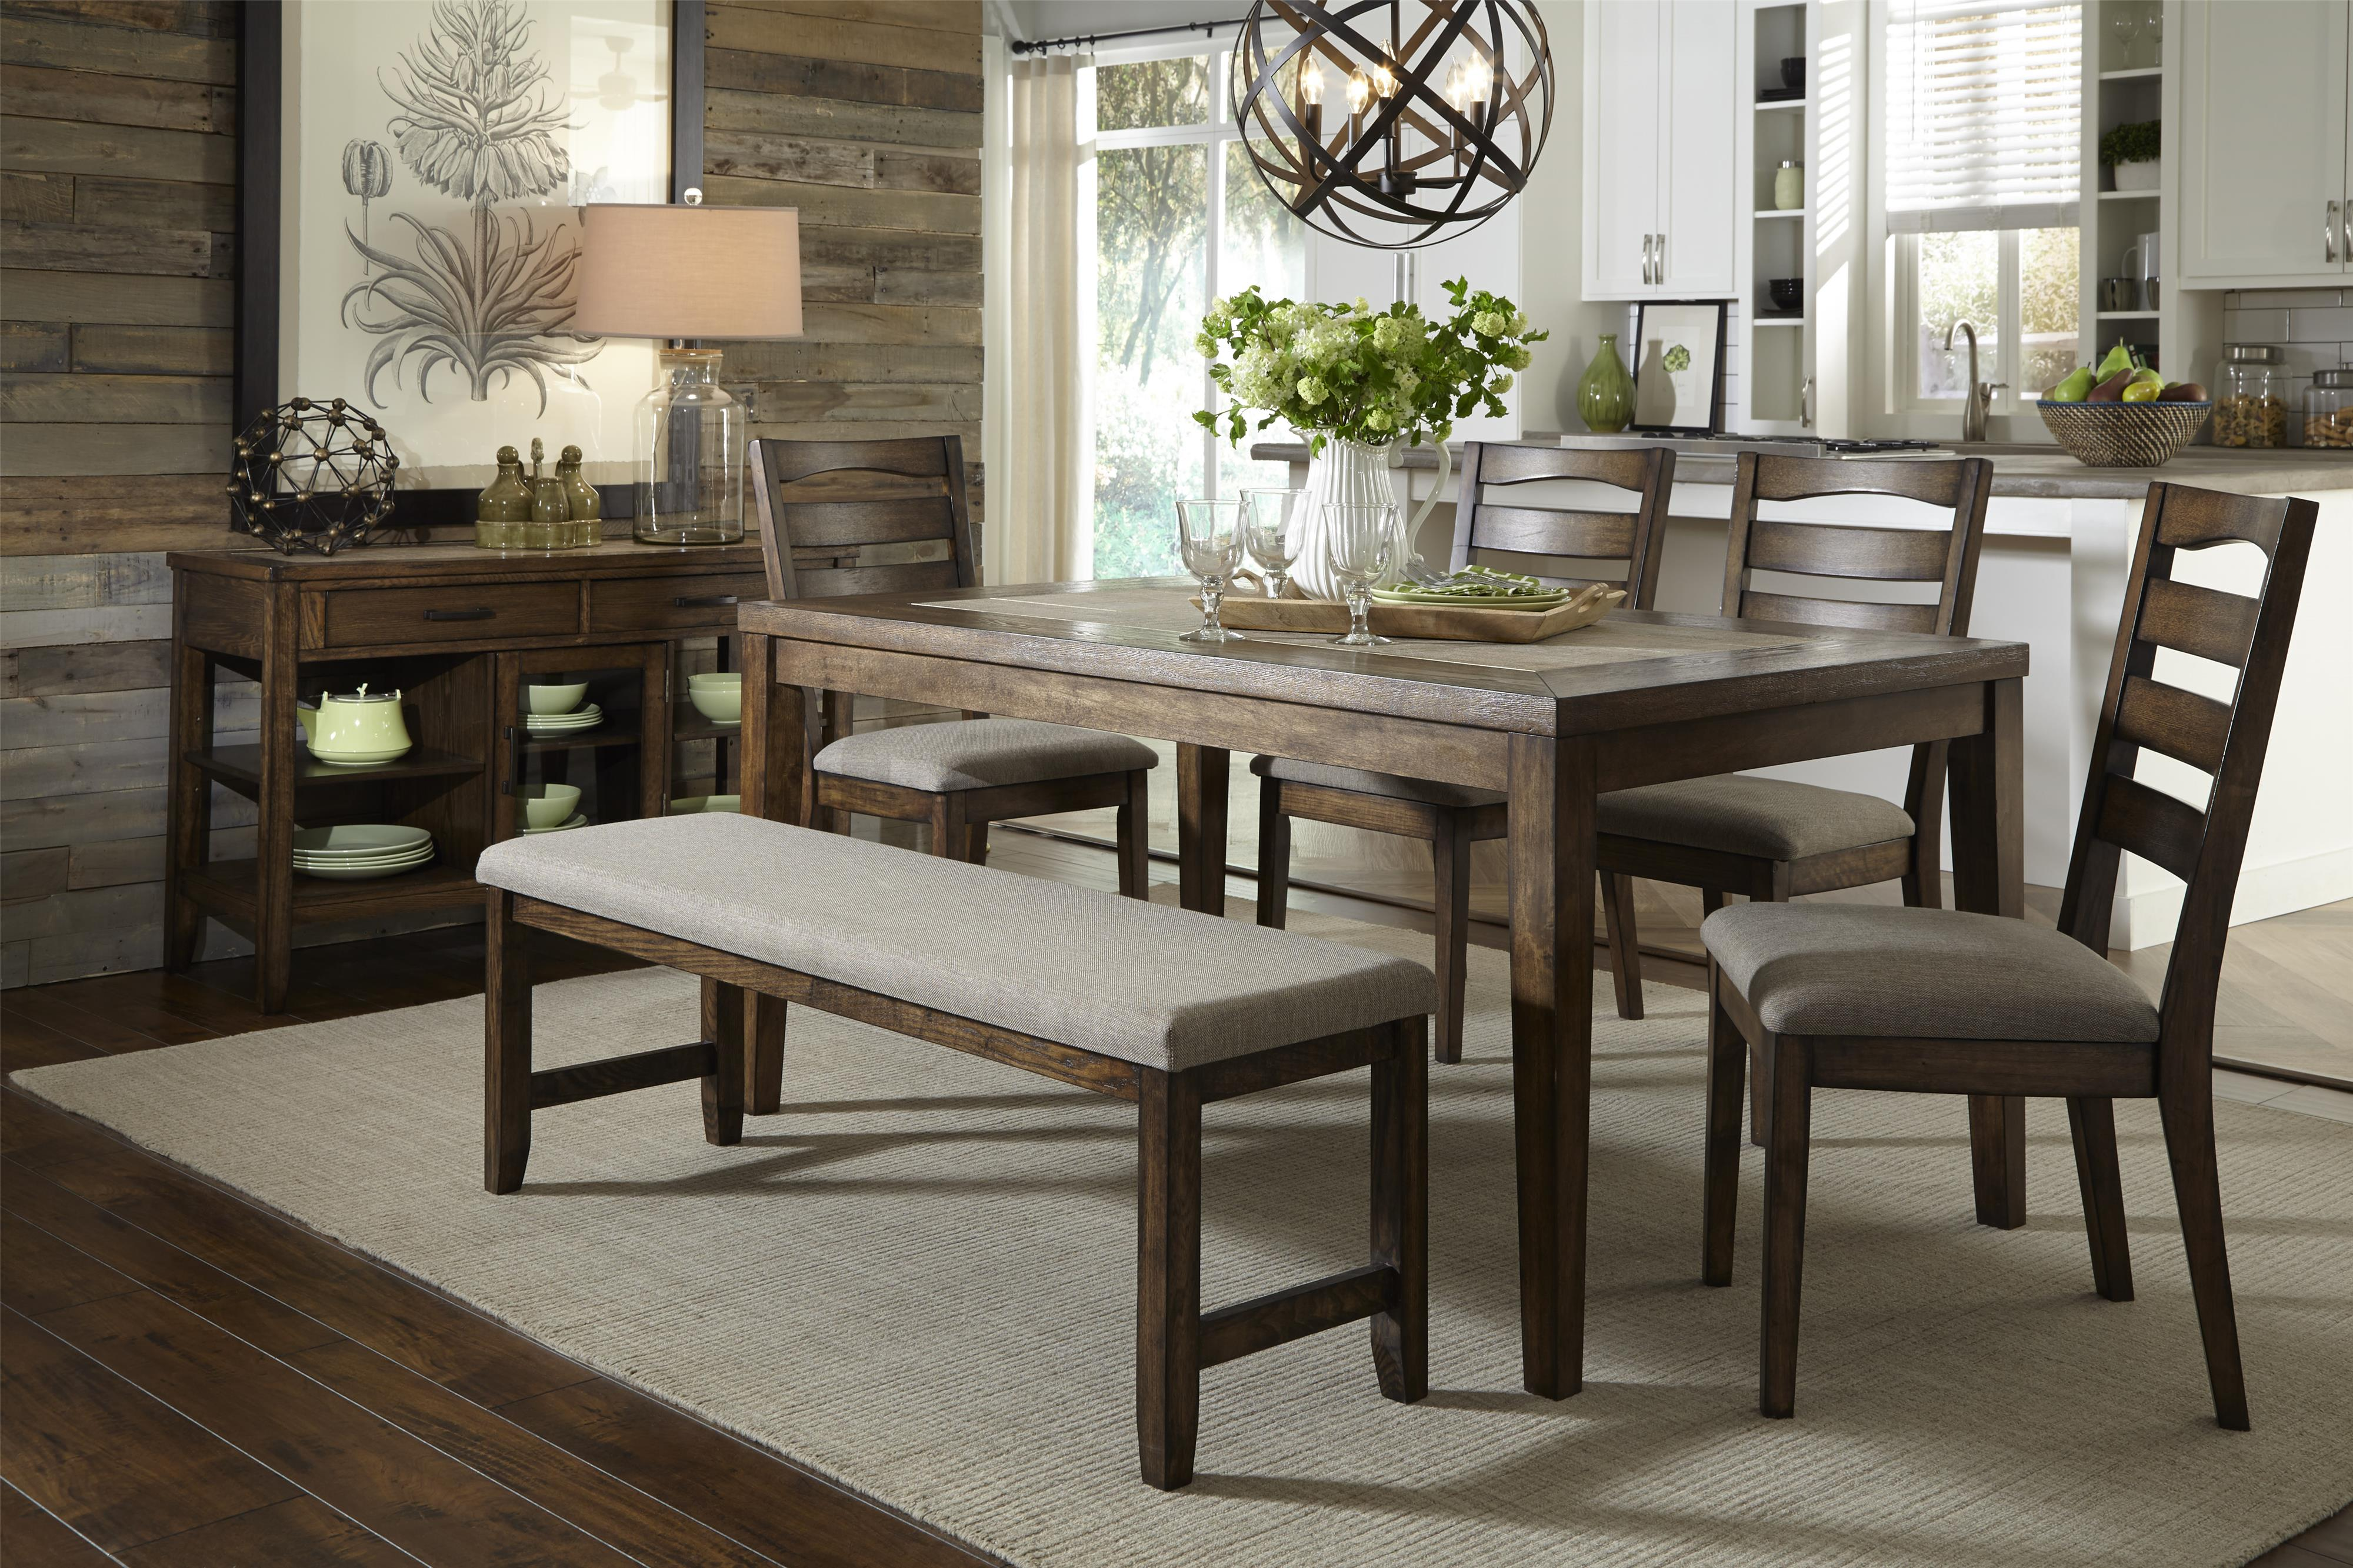 Progressive Furniture Forest Brook Casual Dining Room Group - Item Number: P378D-10+56+69+4x61